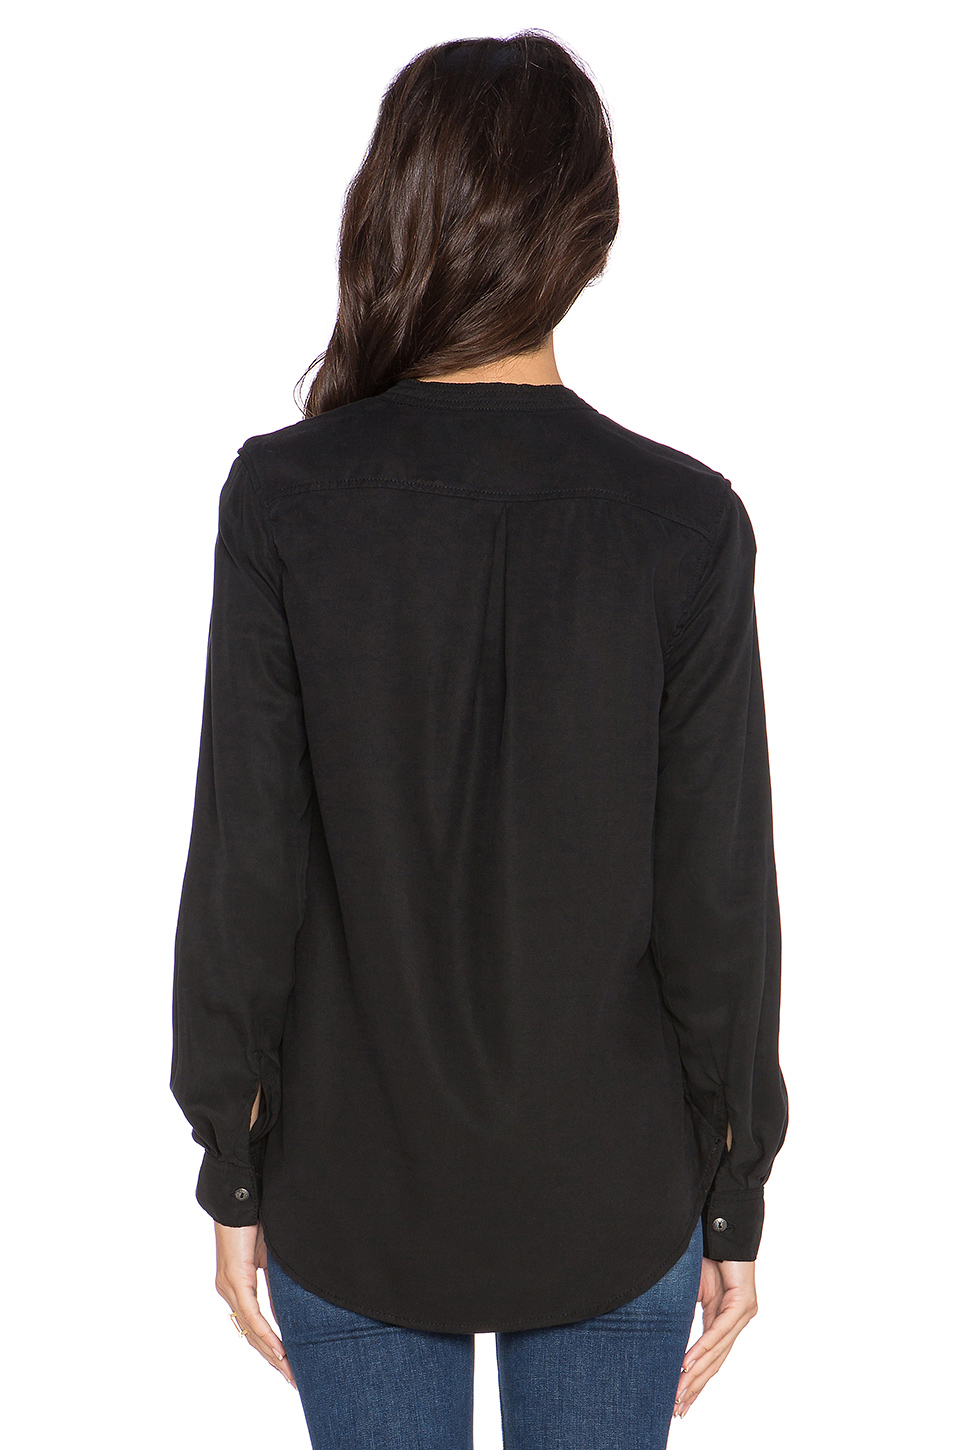 Blank nyc long sleeve top in black lyst for Best dress shirts nyc